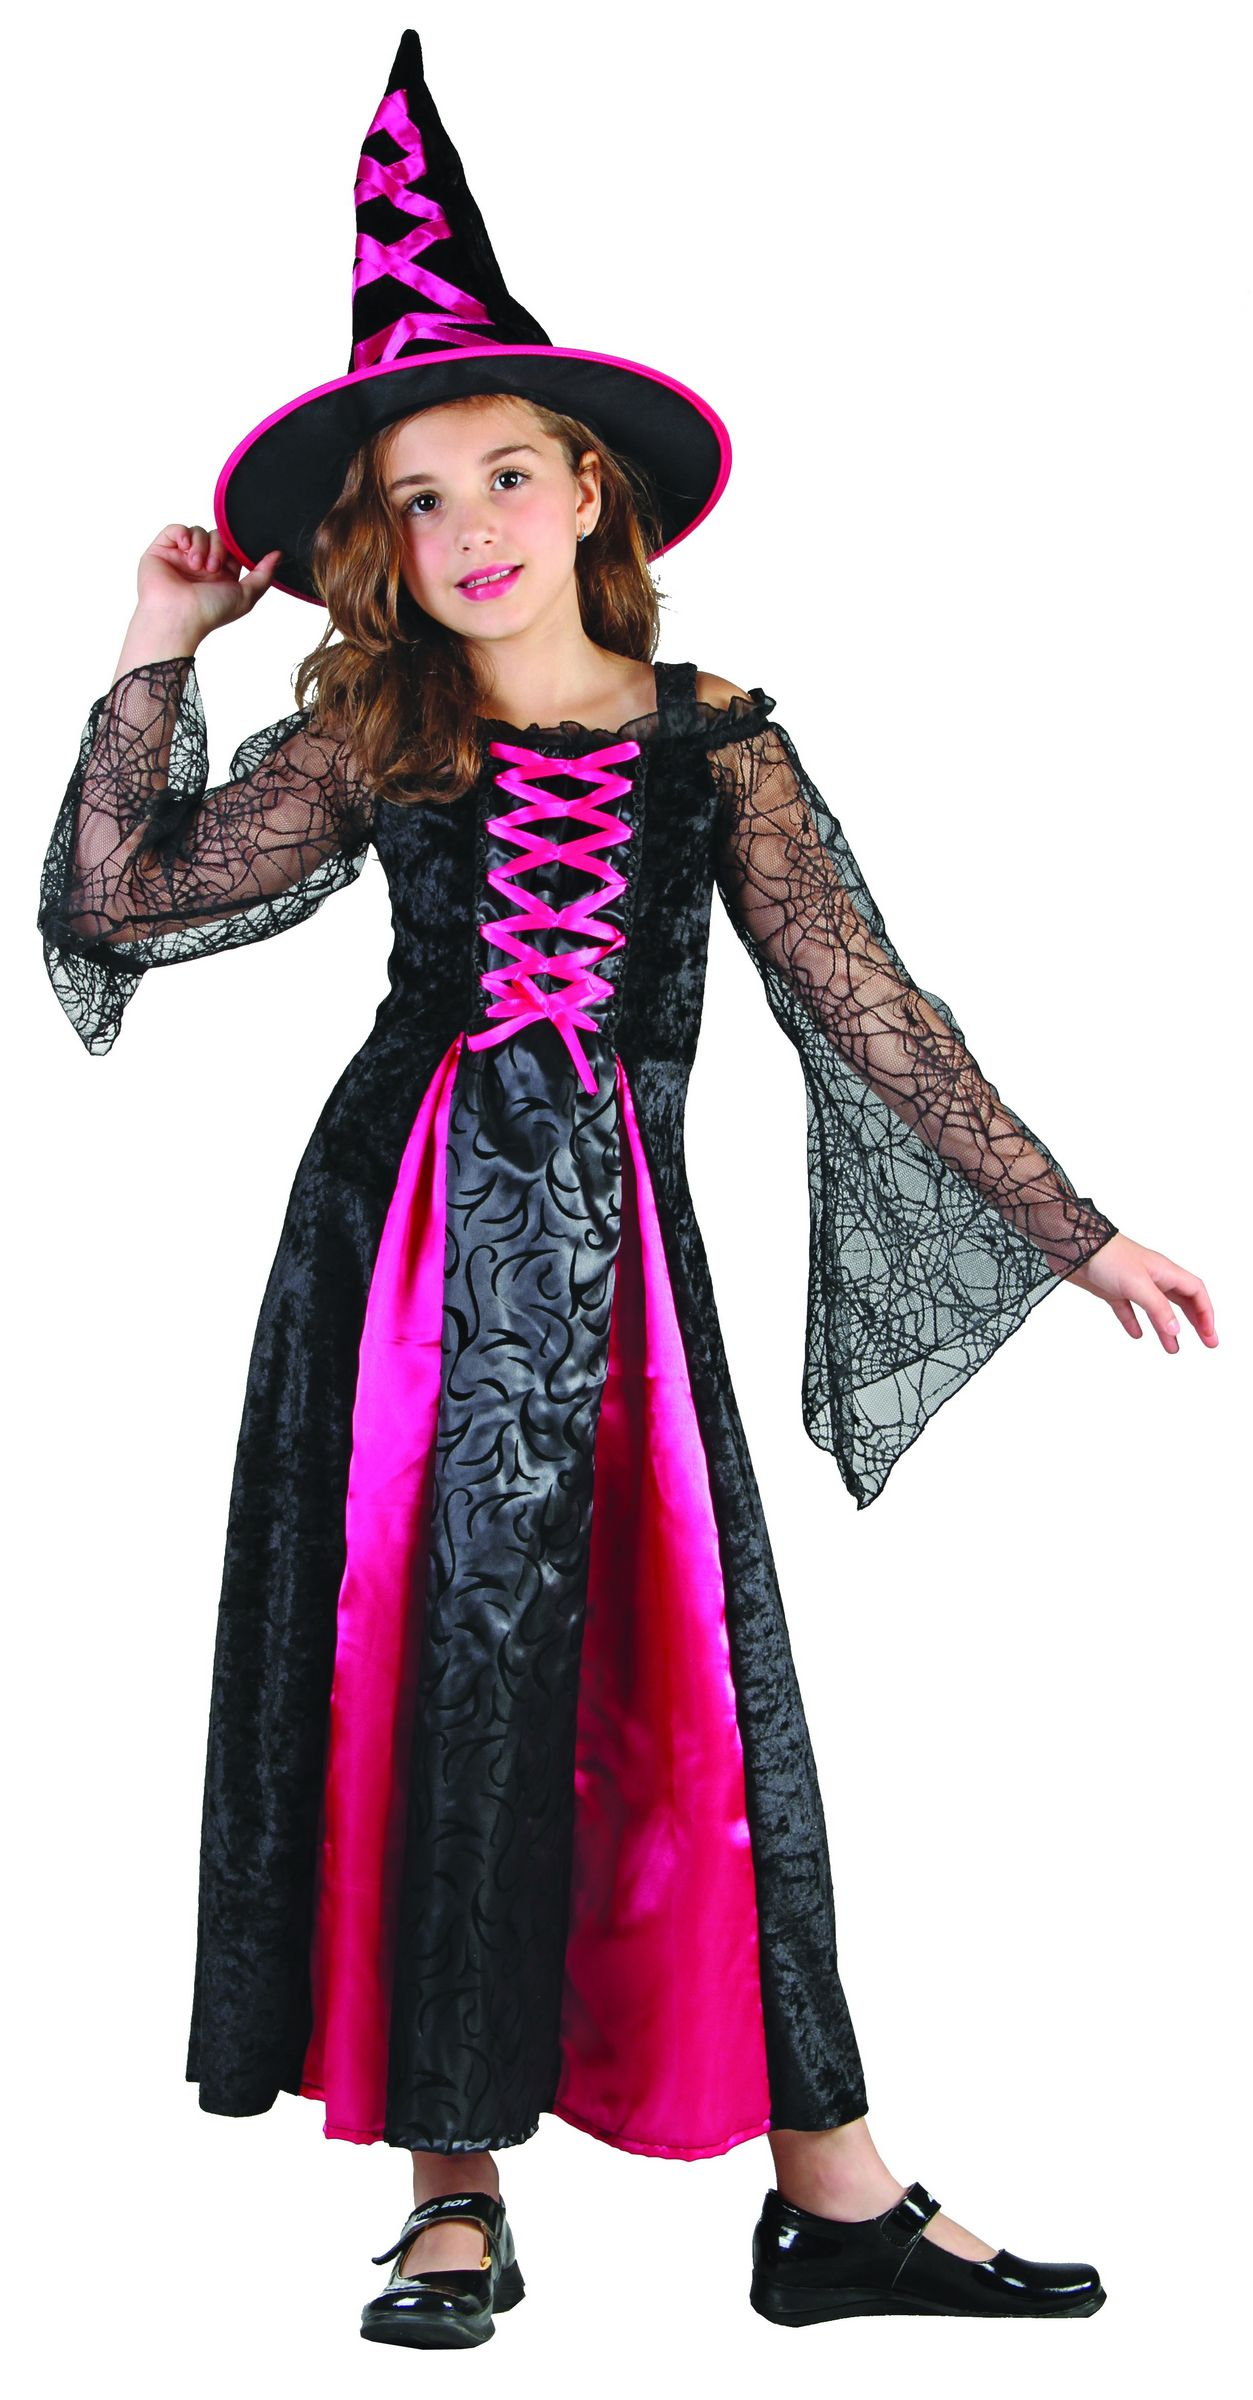 D guisement sorci re fille halloween - Deguisement halloween fille vampire ...